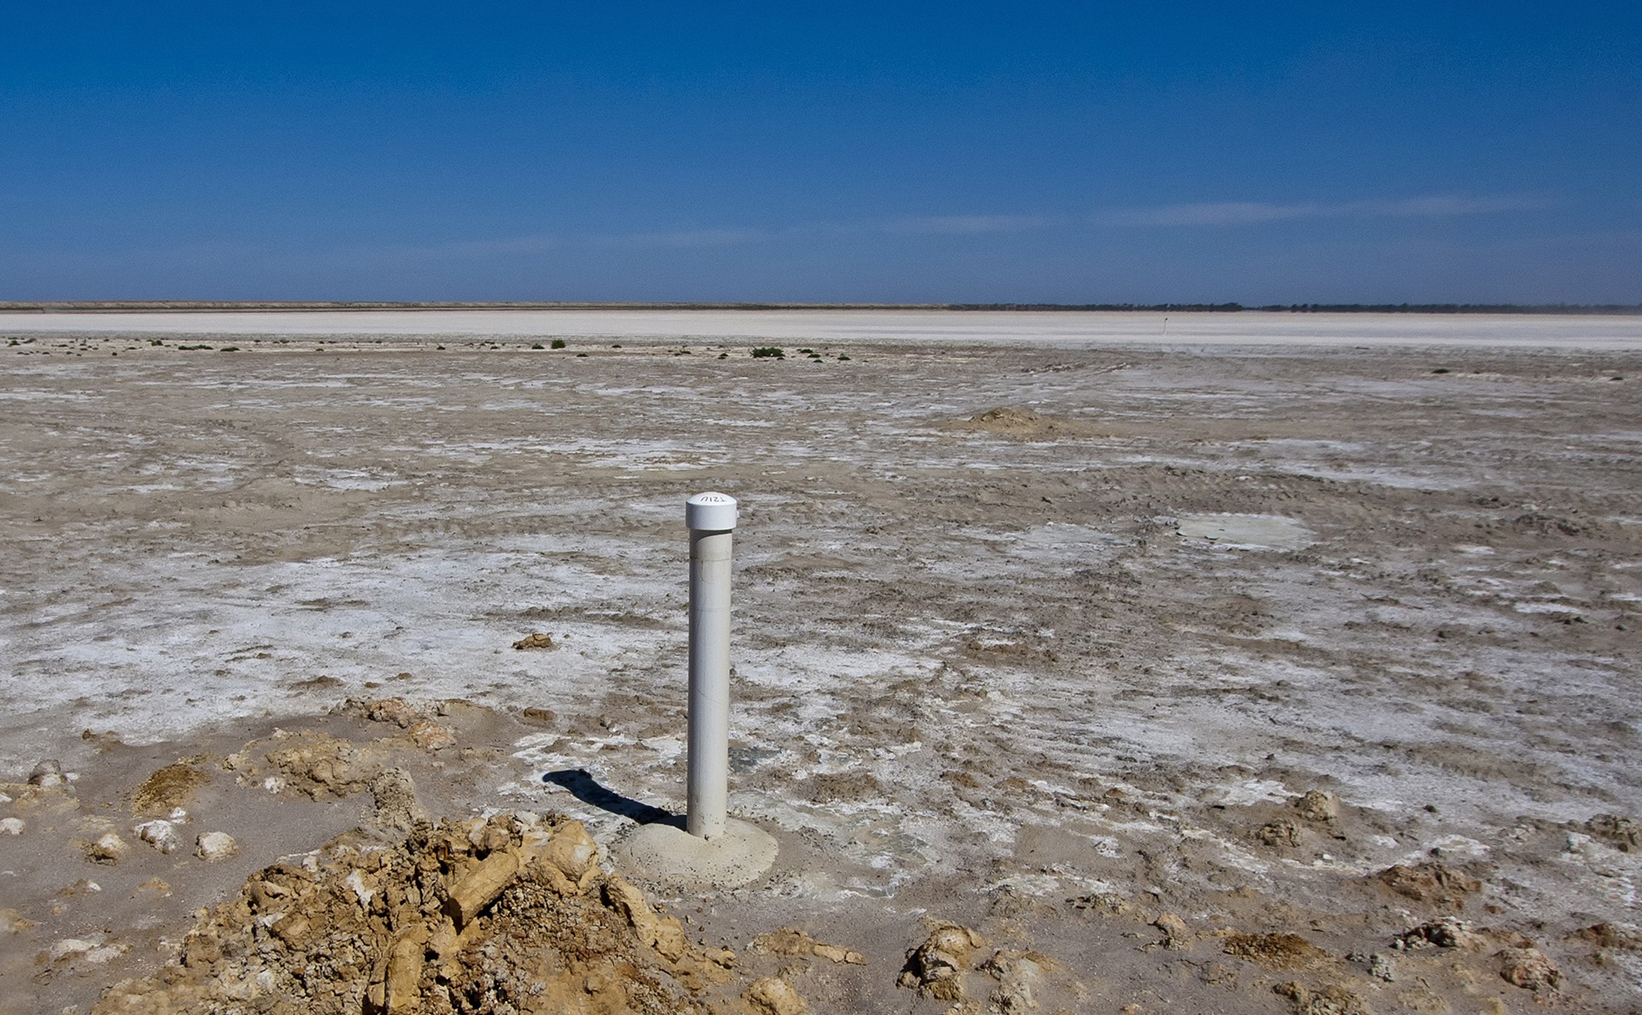 Barren landscape with salt visible on surface of soil